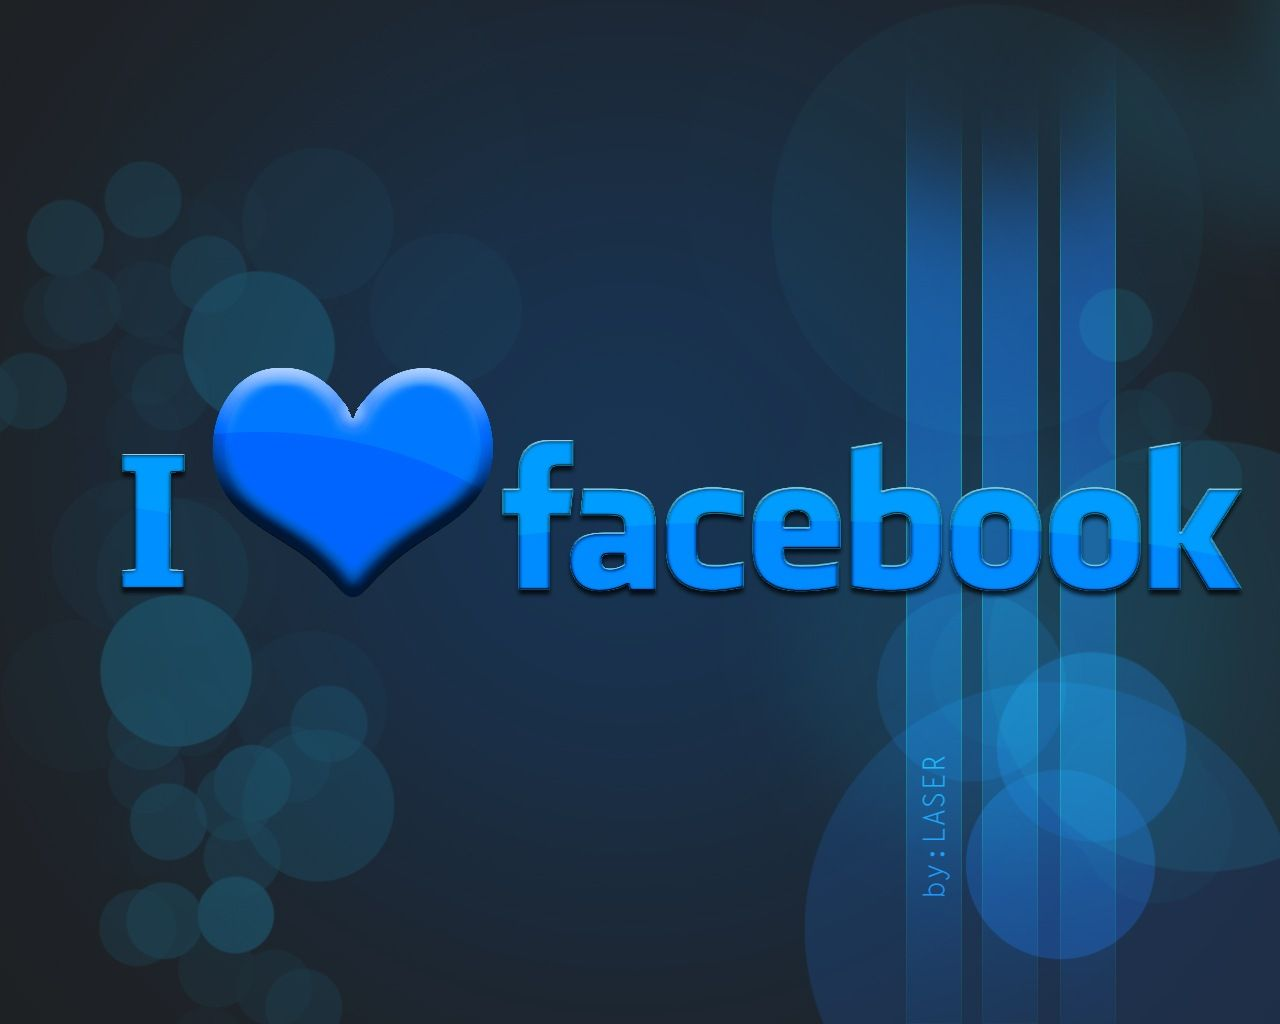 Free Facebook Wallpapers Facebook Wallpapers To Choose 1280x1024 Download Wallpapers For Facebook 46 Wallpapers Adorable Wallpapers